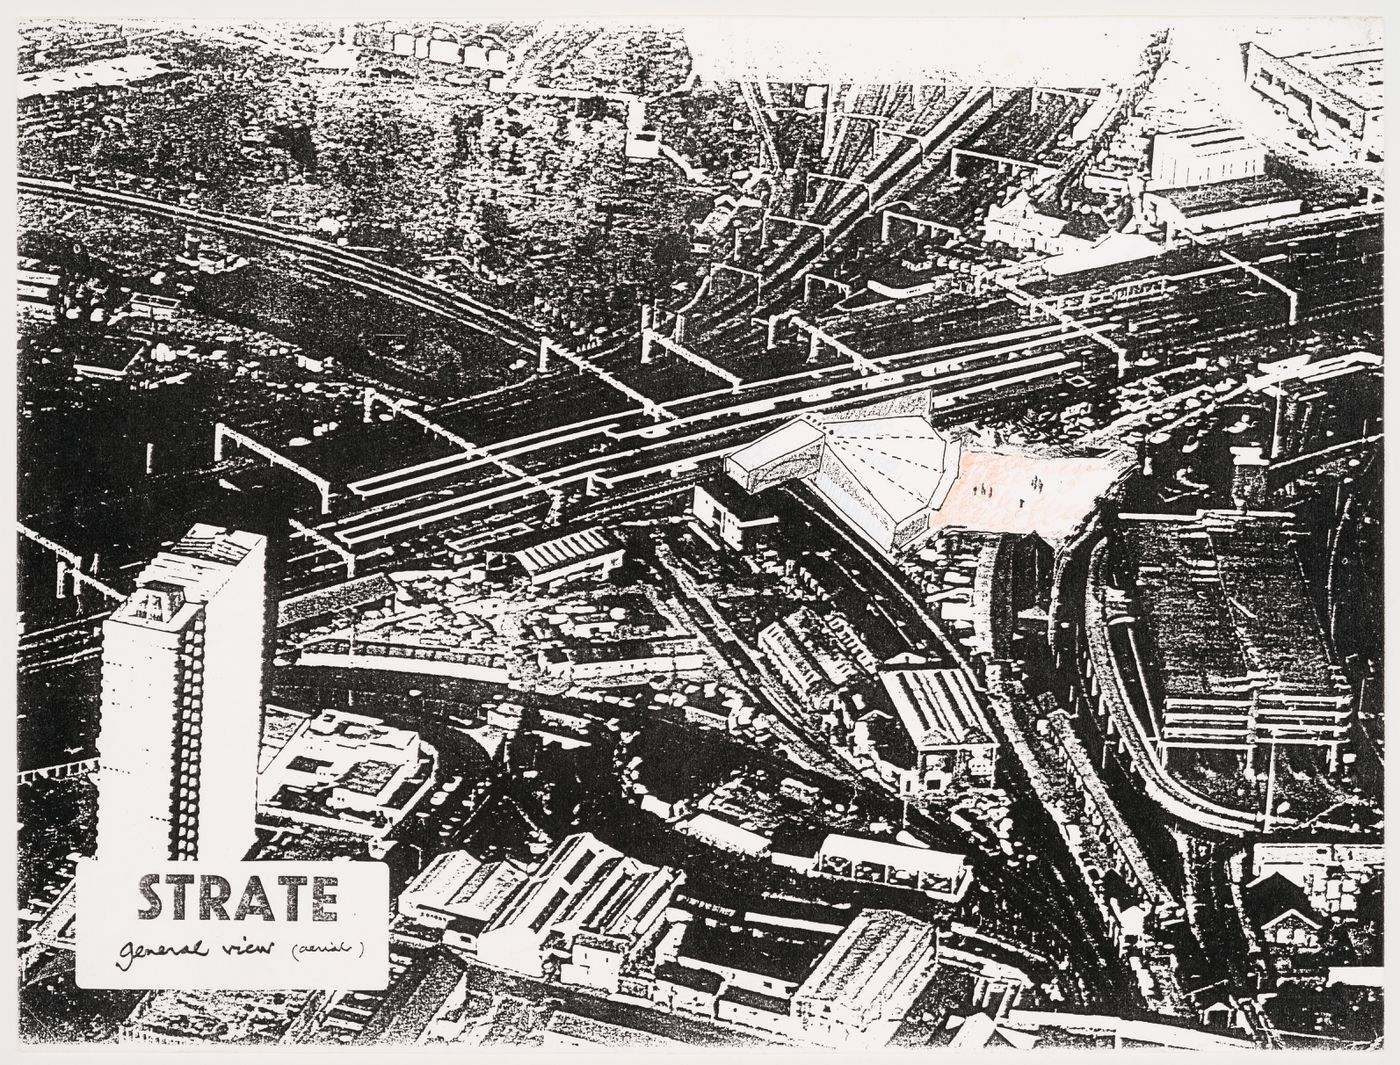 Strate: general view (aerial)